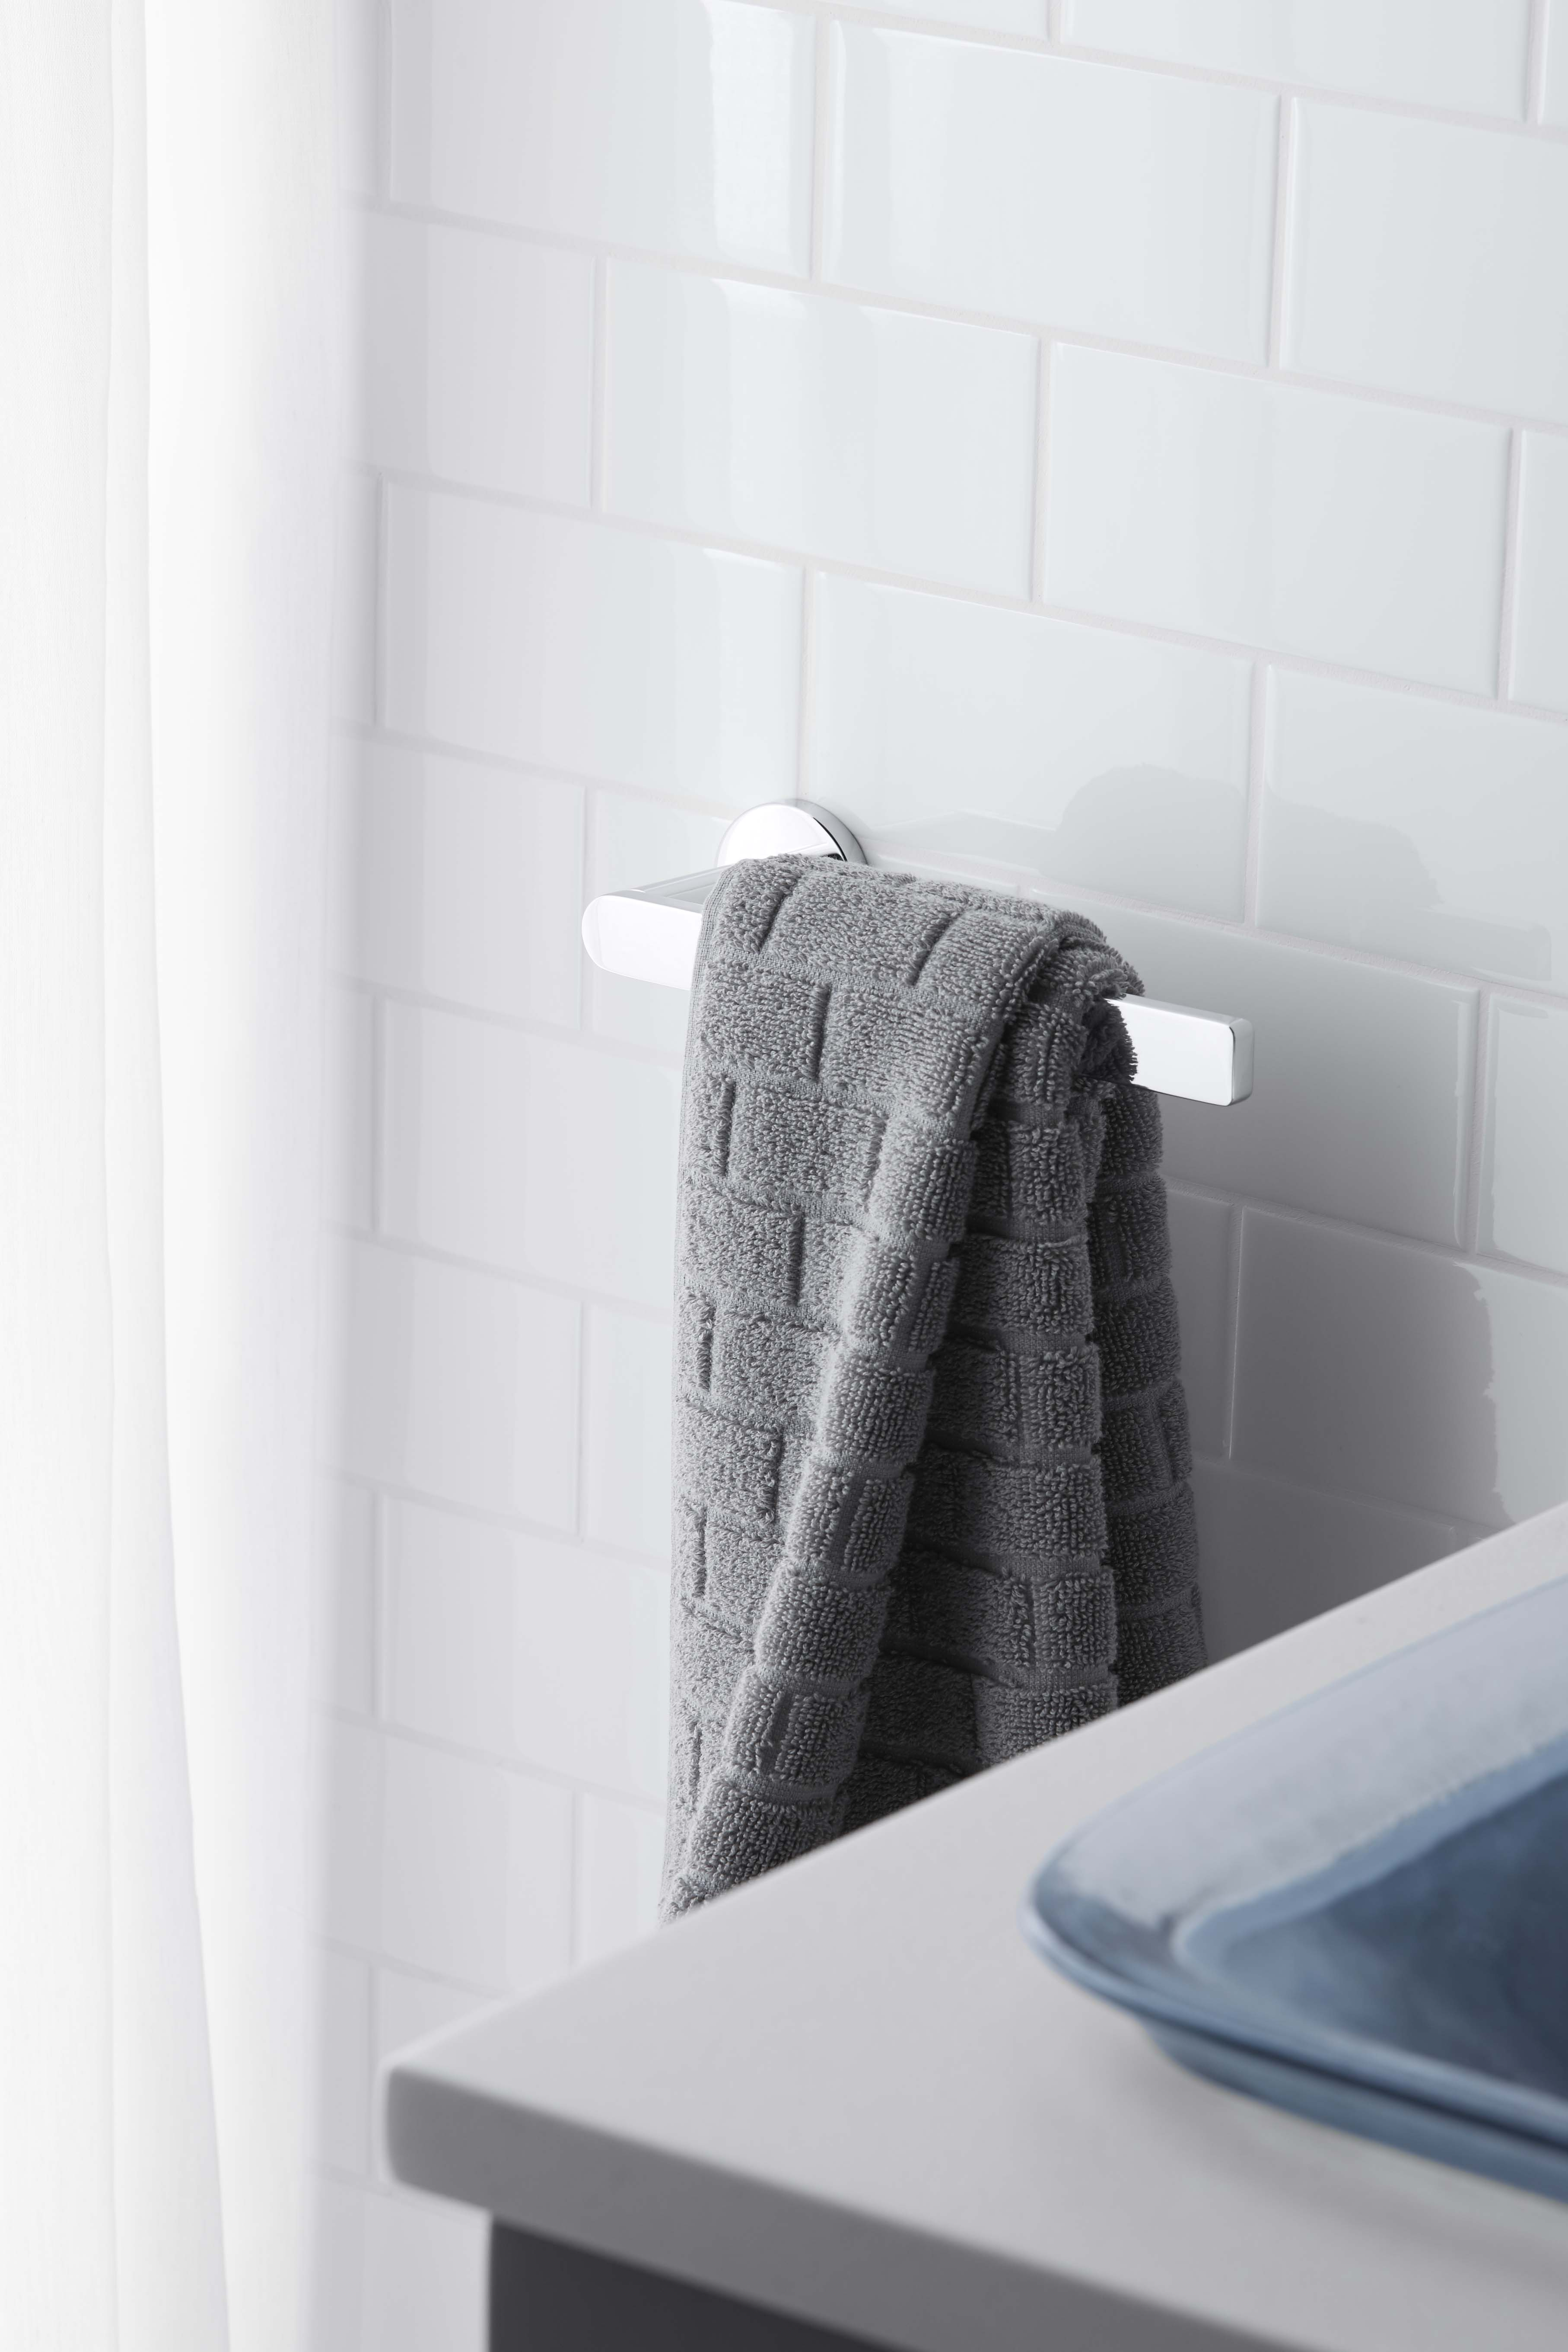 Composed Towel Arm     A sleek towel arm matches the timeless simplicity of the sink and bath faucets.